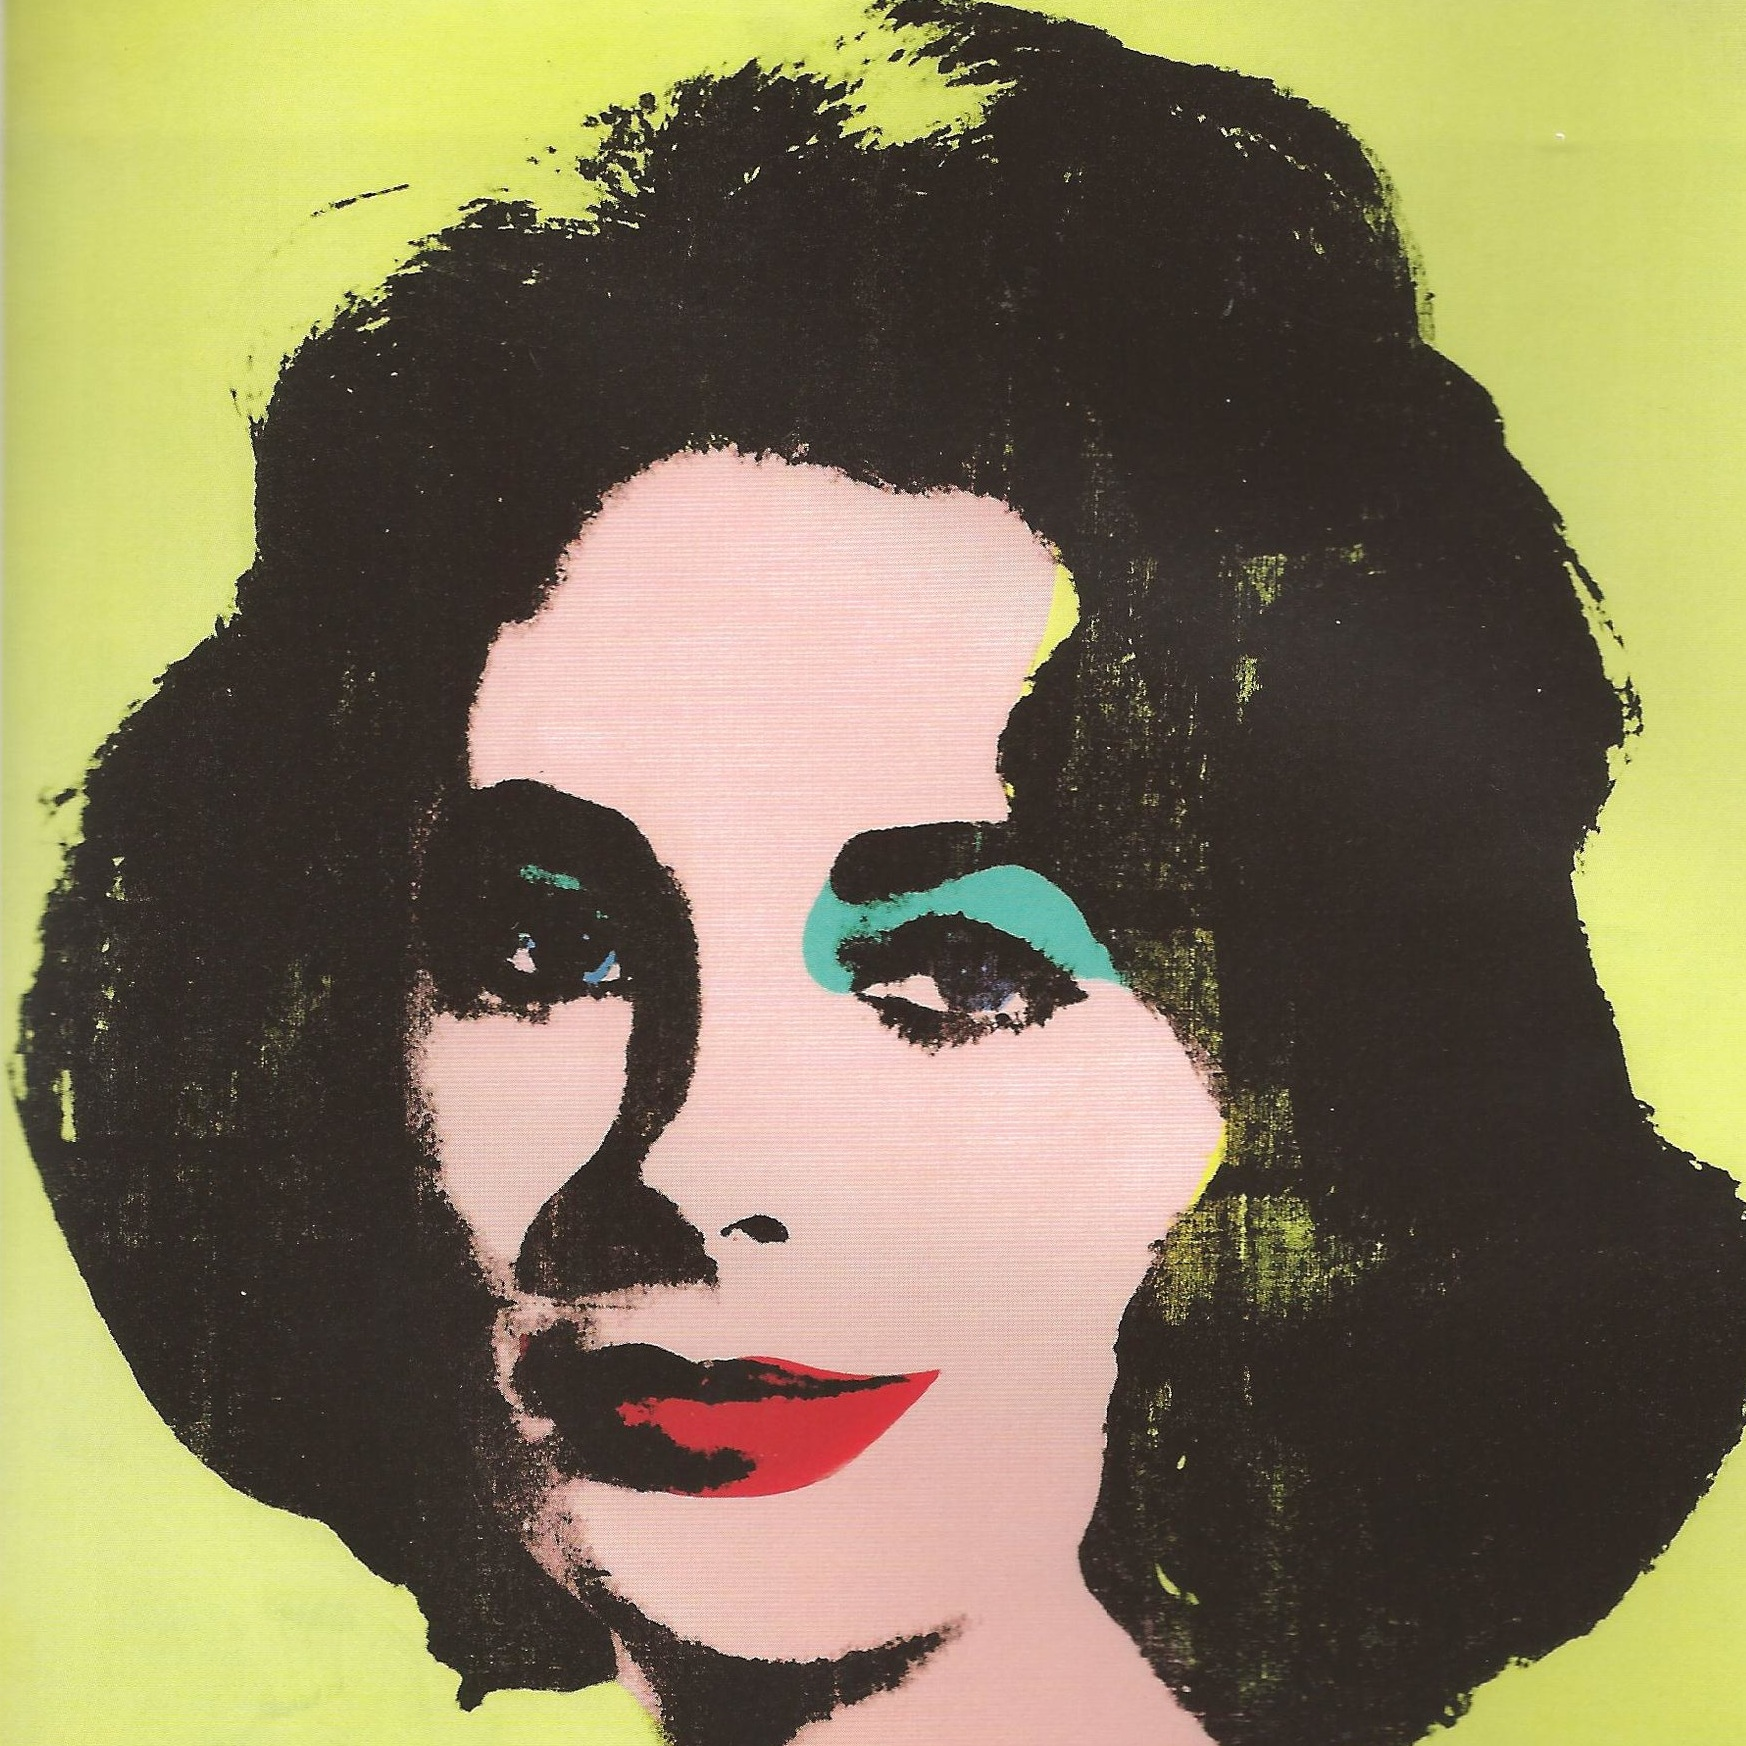 Andy Warhol: Liz #1 (Early Coloured Liz), 1963  Silkscreen ink and acrylic on linen, 101.6 cm x 101.6 cm  L&M Arts: New York – Los Angeles